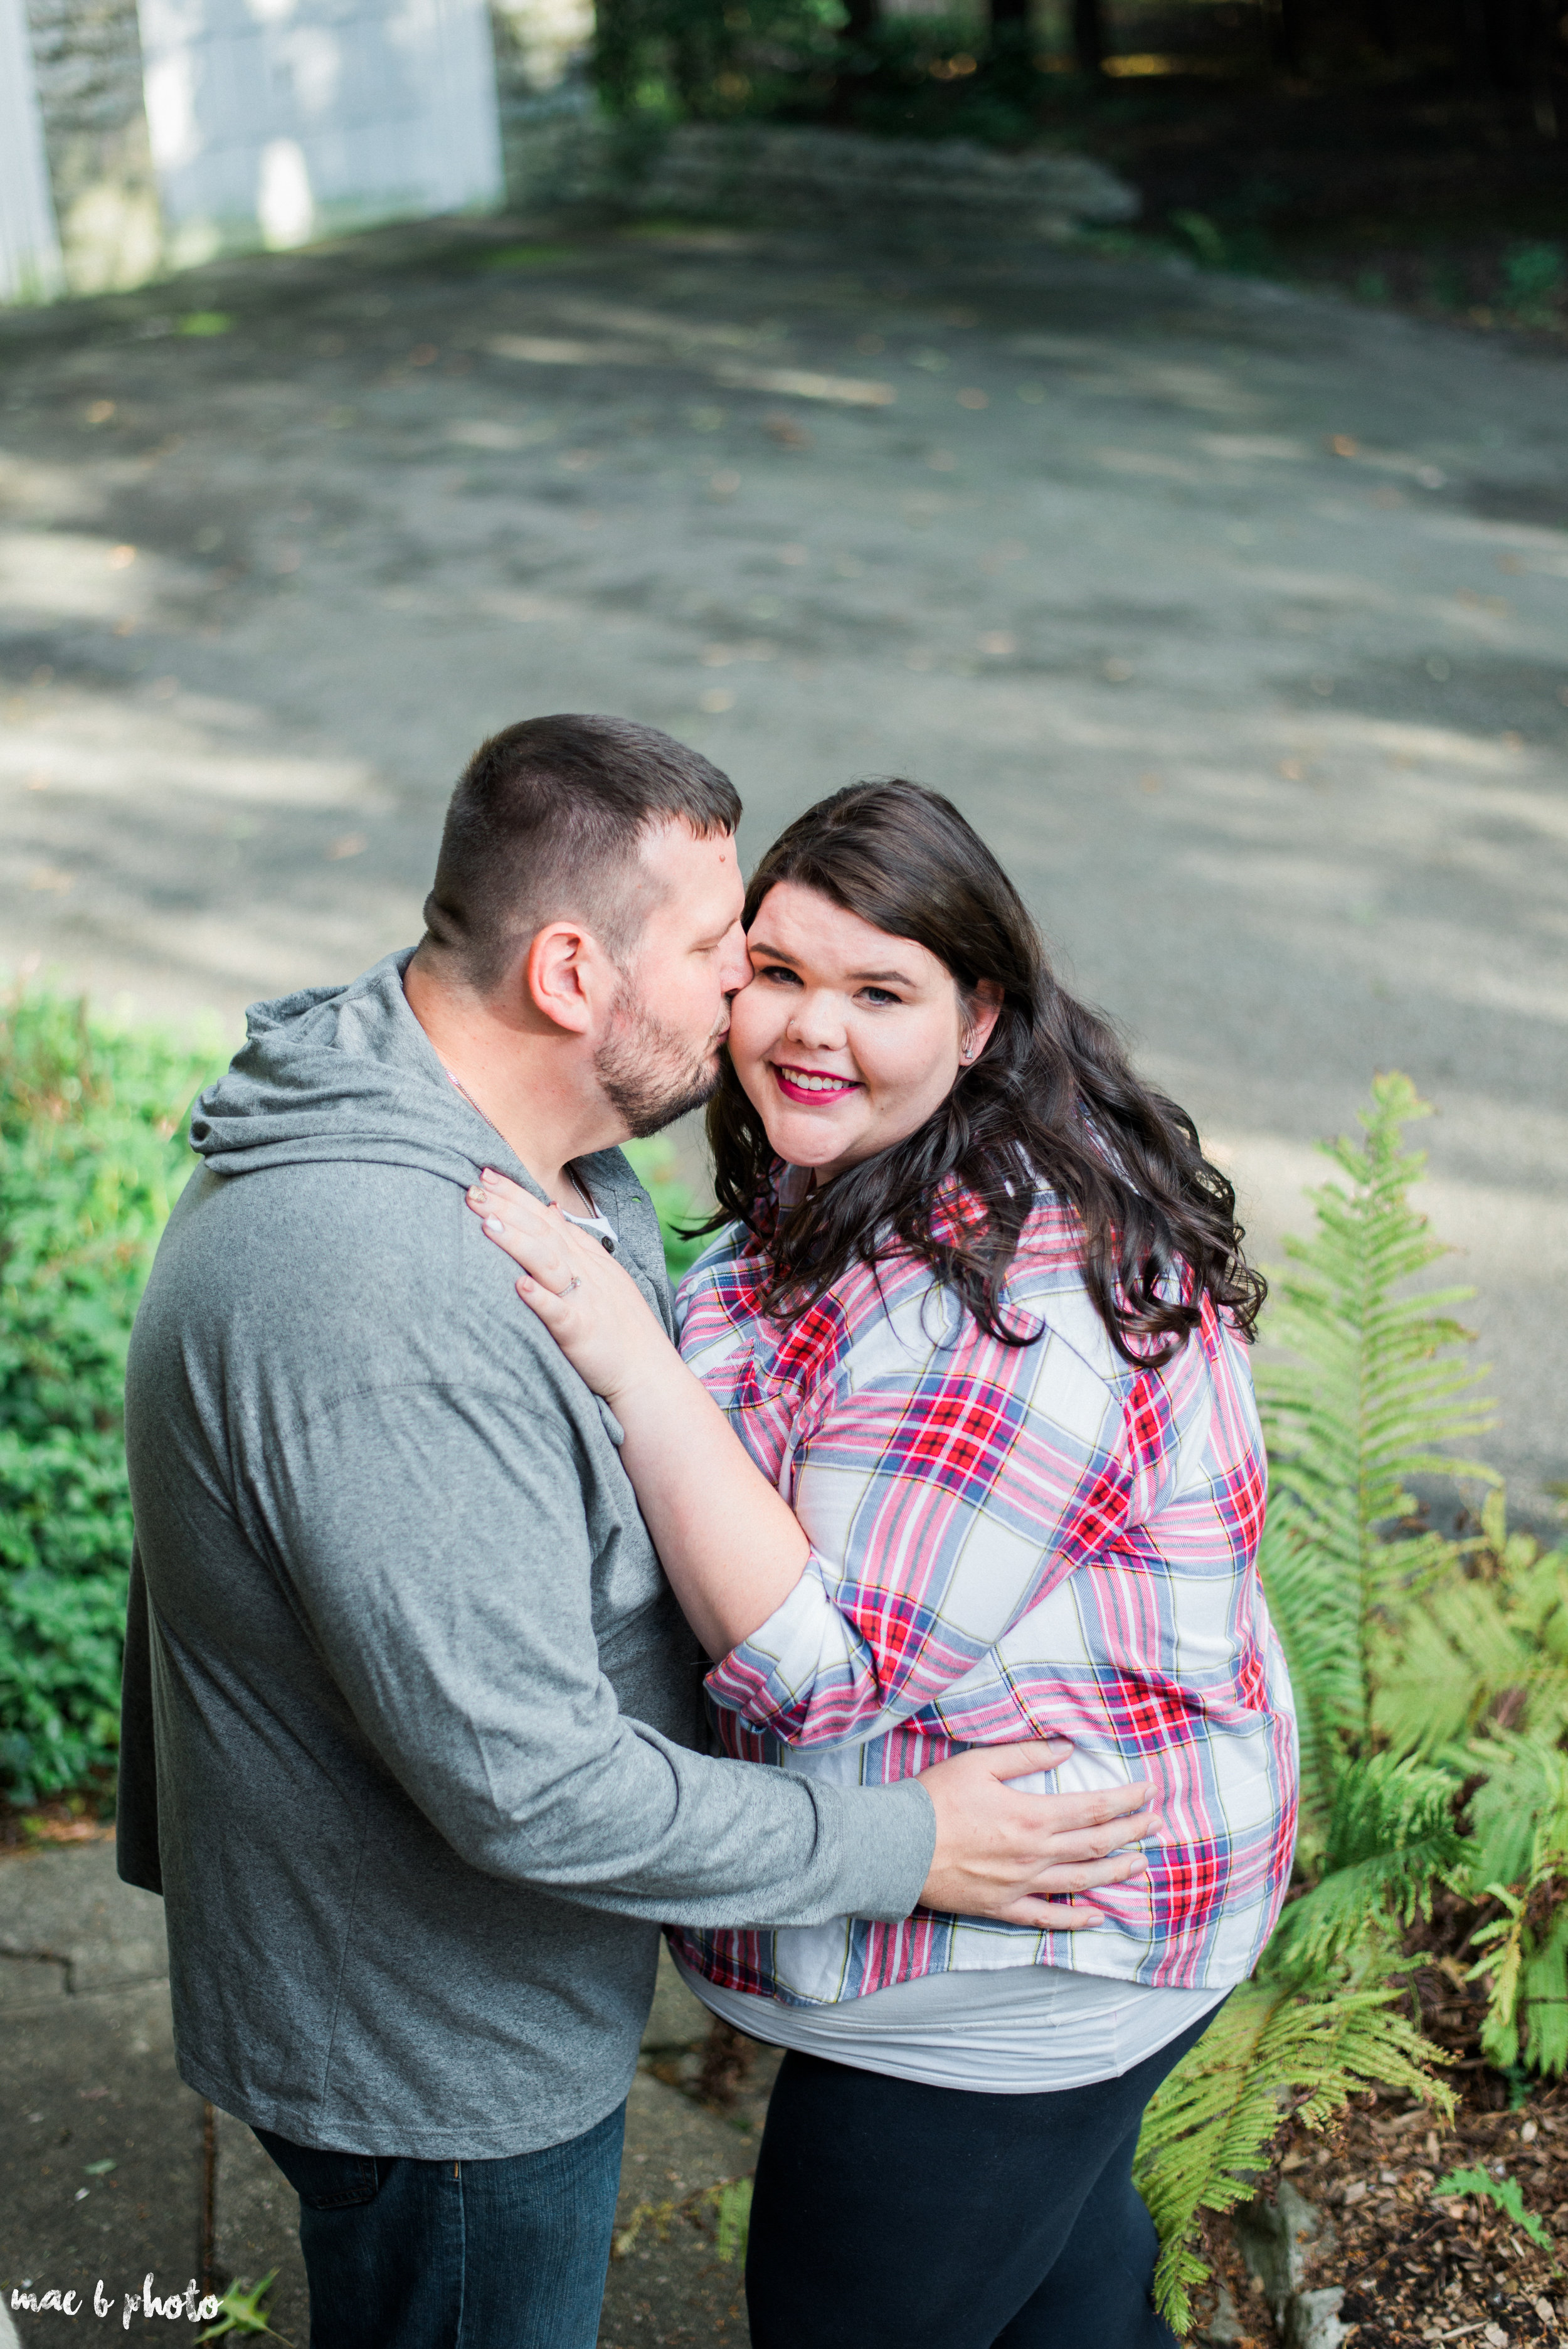 Kristina & Ryan's Summer Mill Creek Park Engagement Session in Youngstown, Ohio-15.jpg